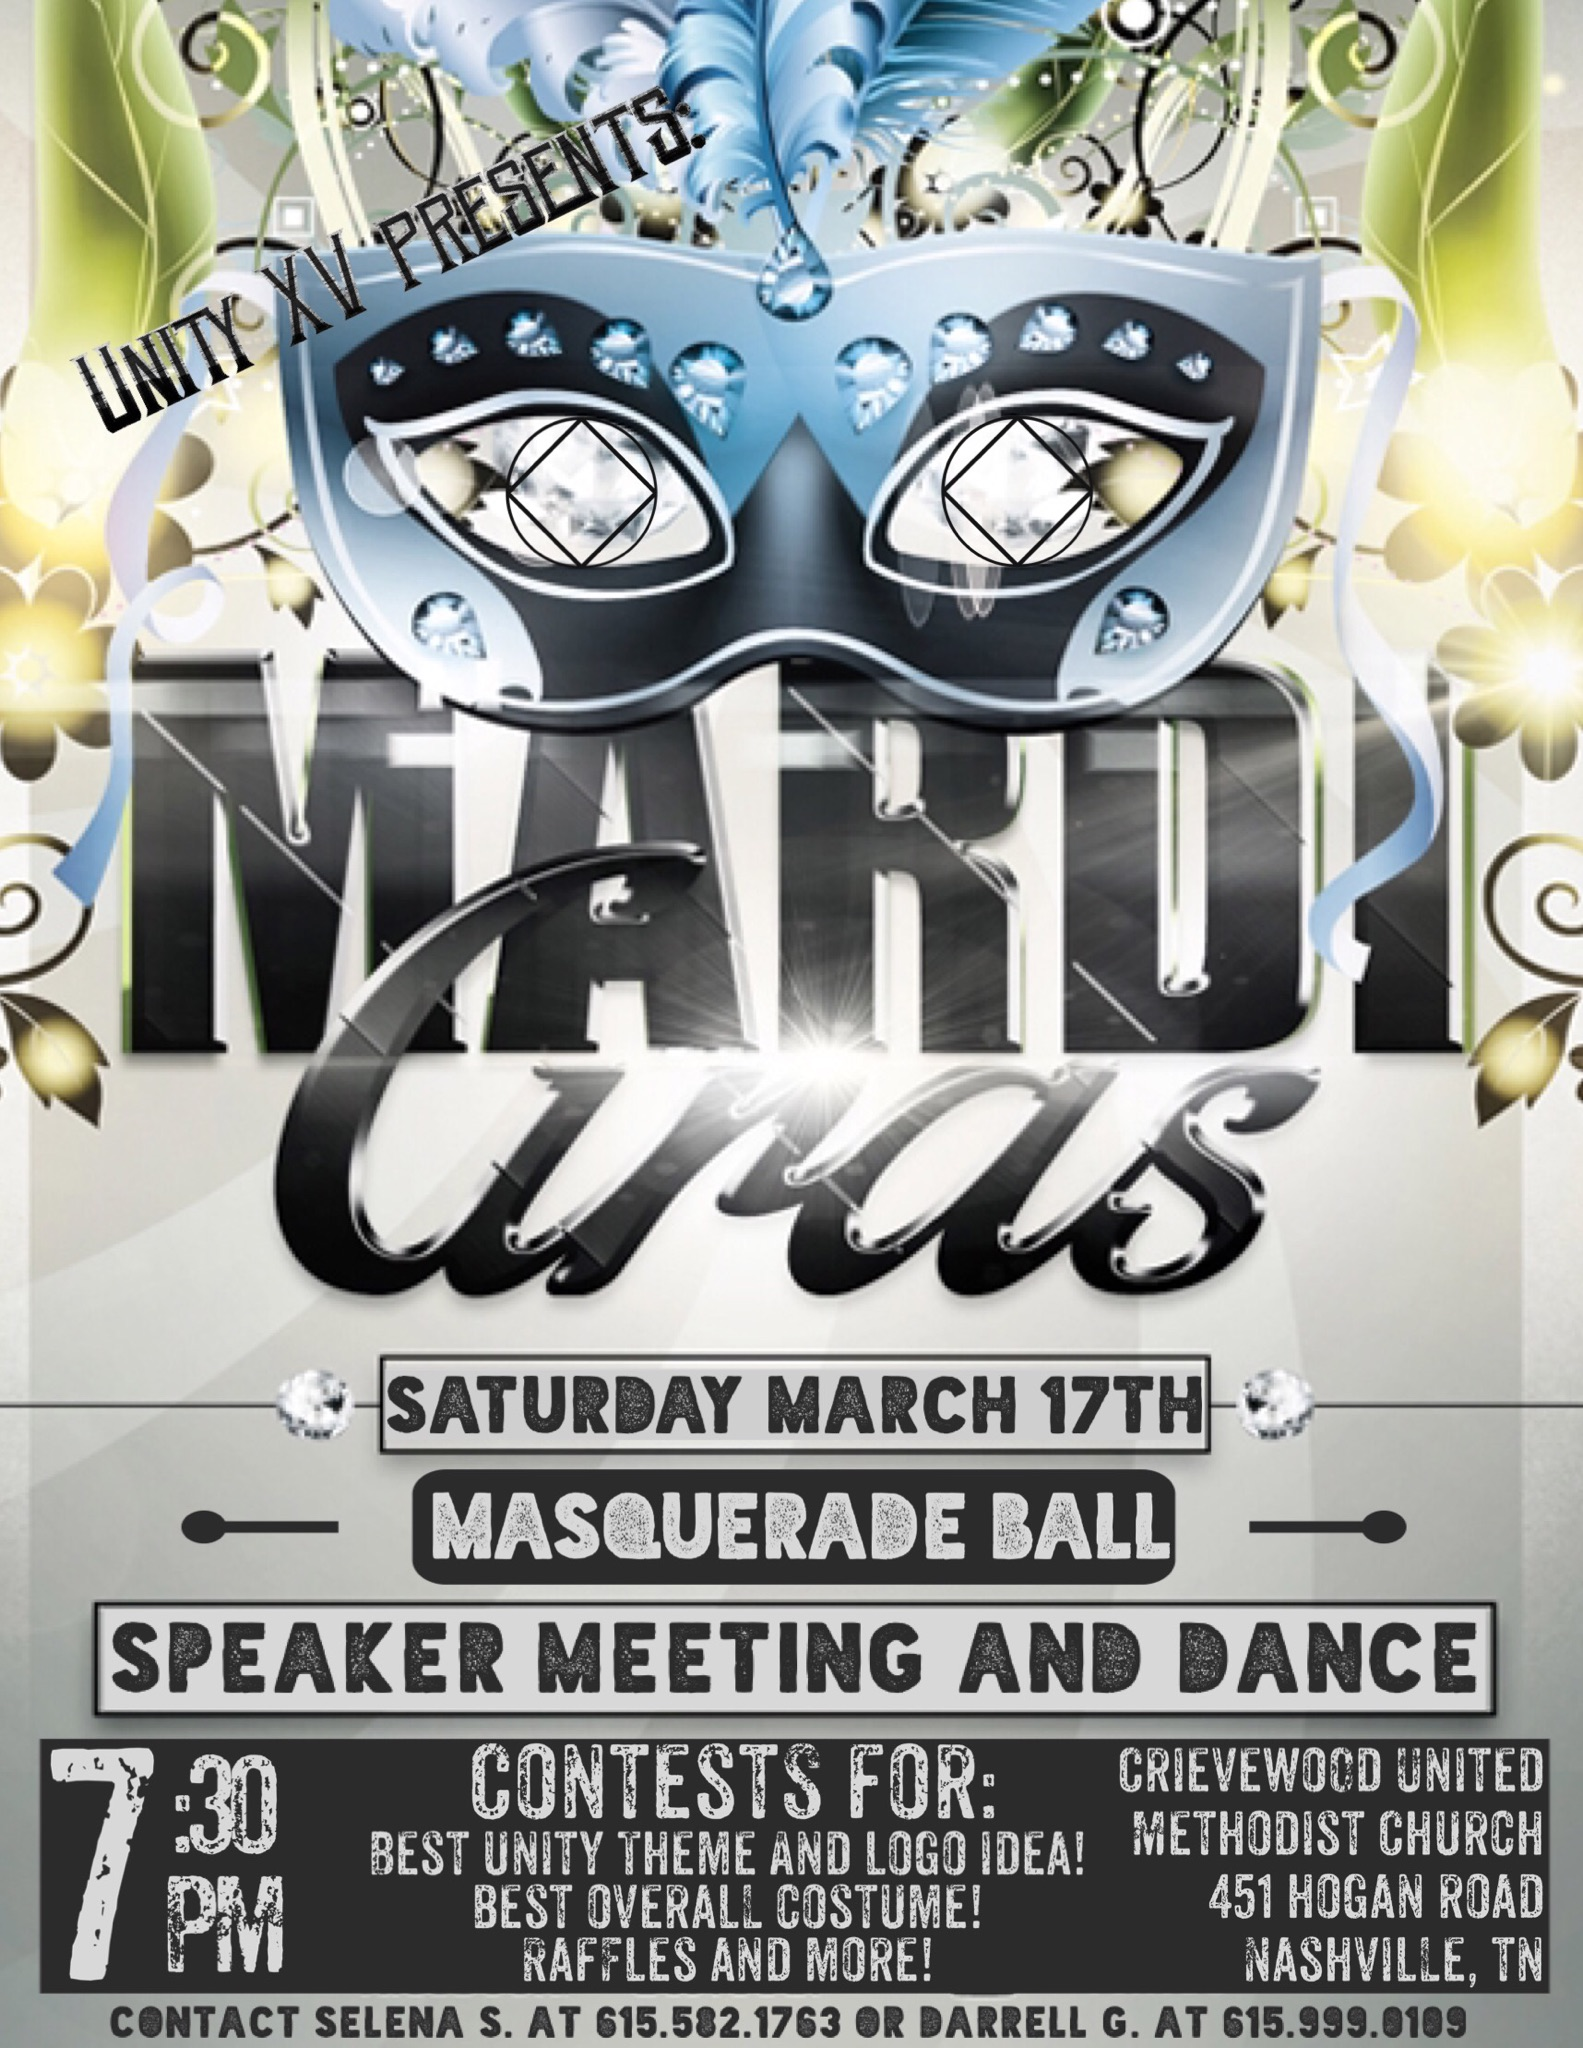 Mardi Gras Masquerade Ball Of Narcotics Anonymous In Nashville